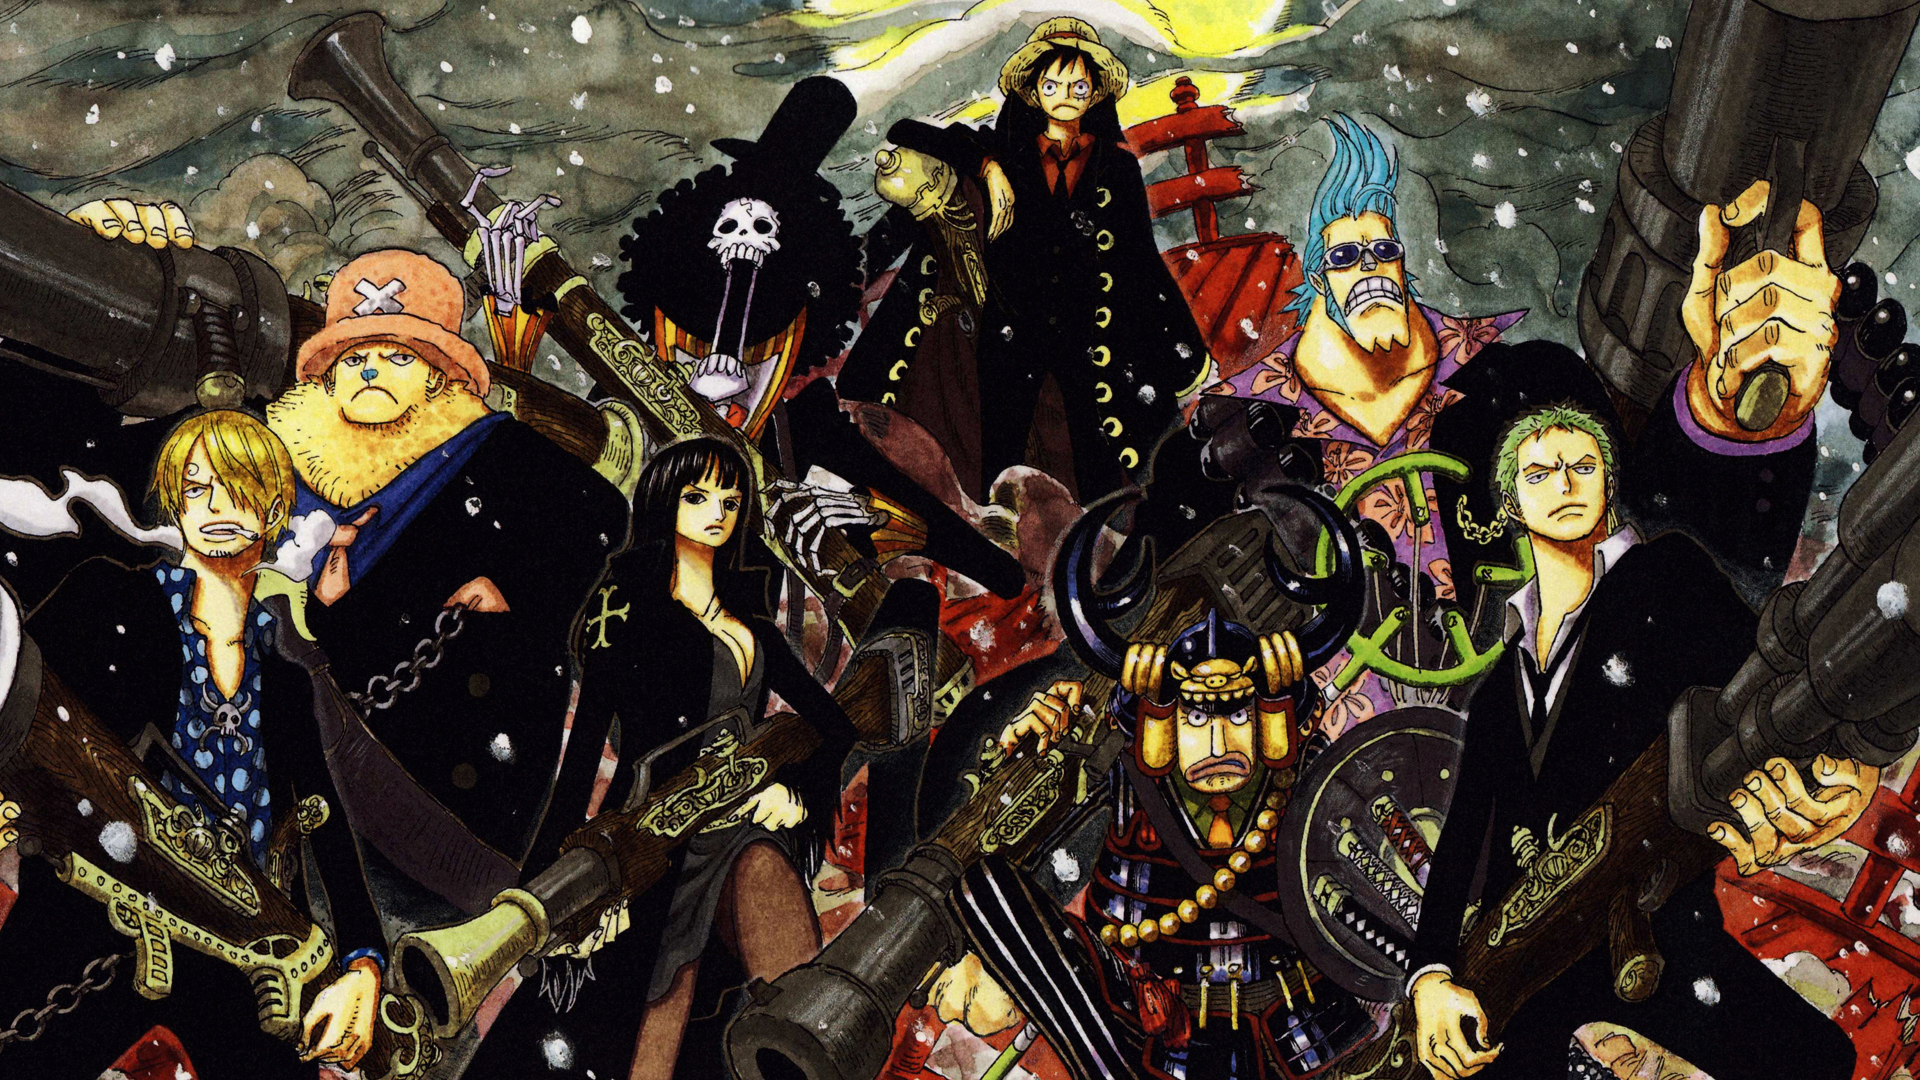 Free Download One Piece Crew Wallpaper New World 1920x1080 For